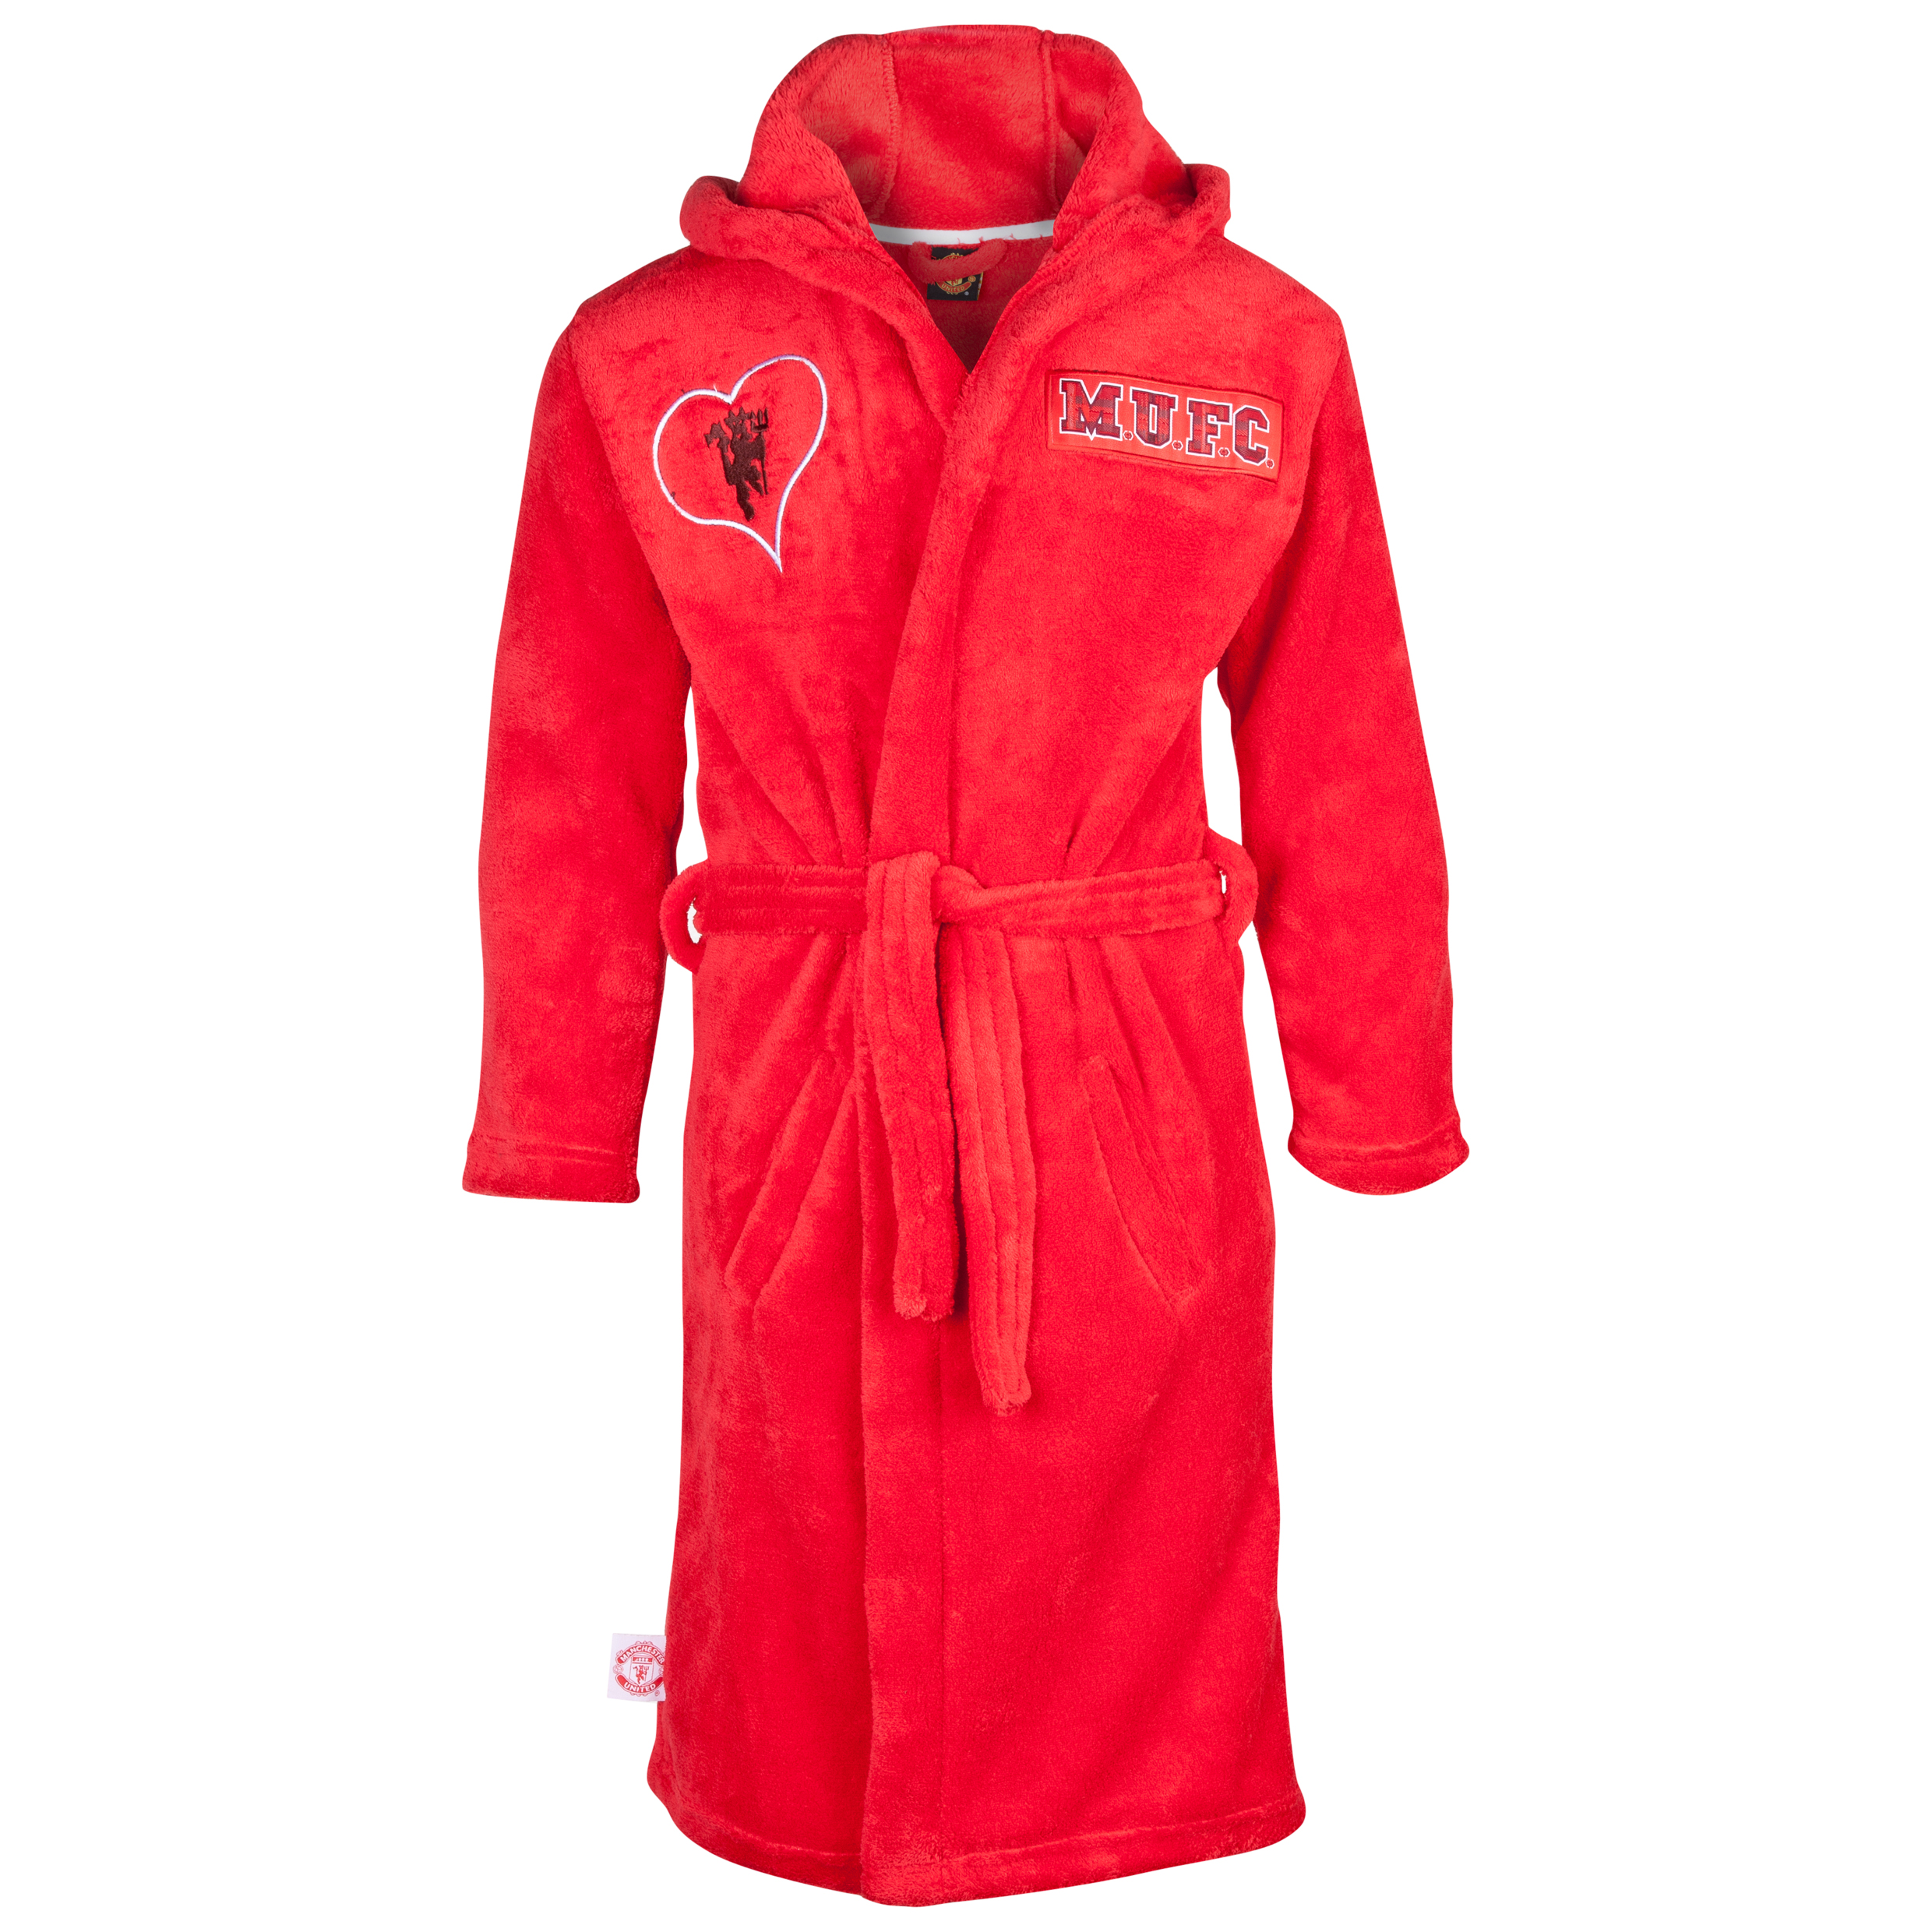 Manchester United Heart Devil Hooded Robe - Older Girls Red